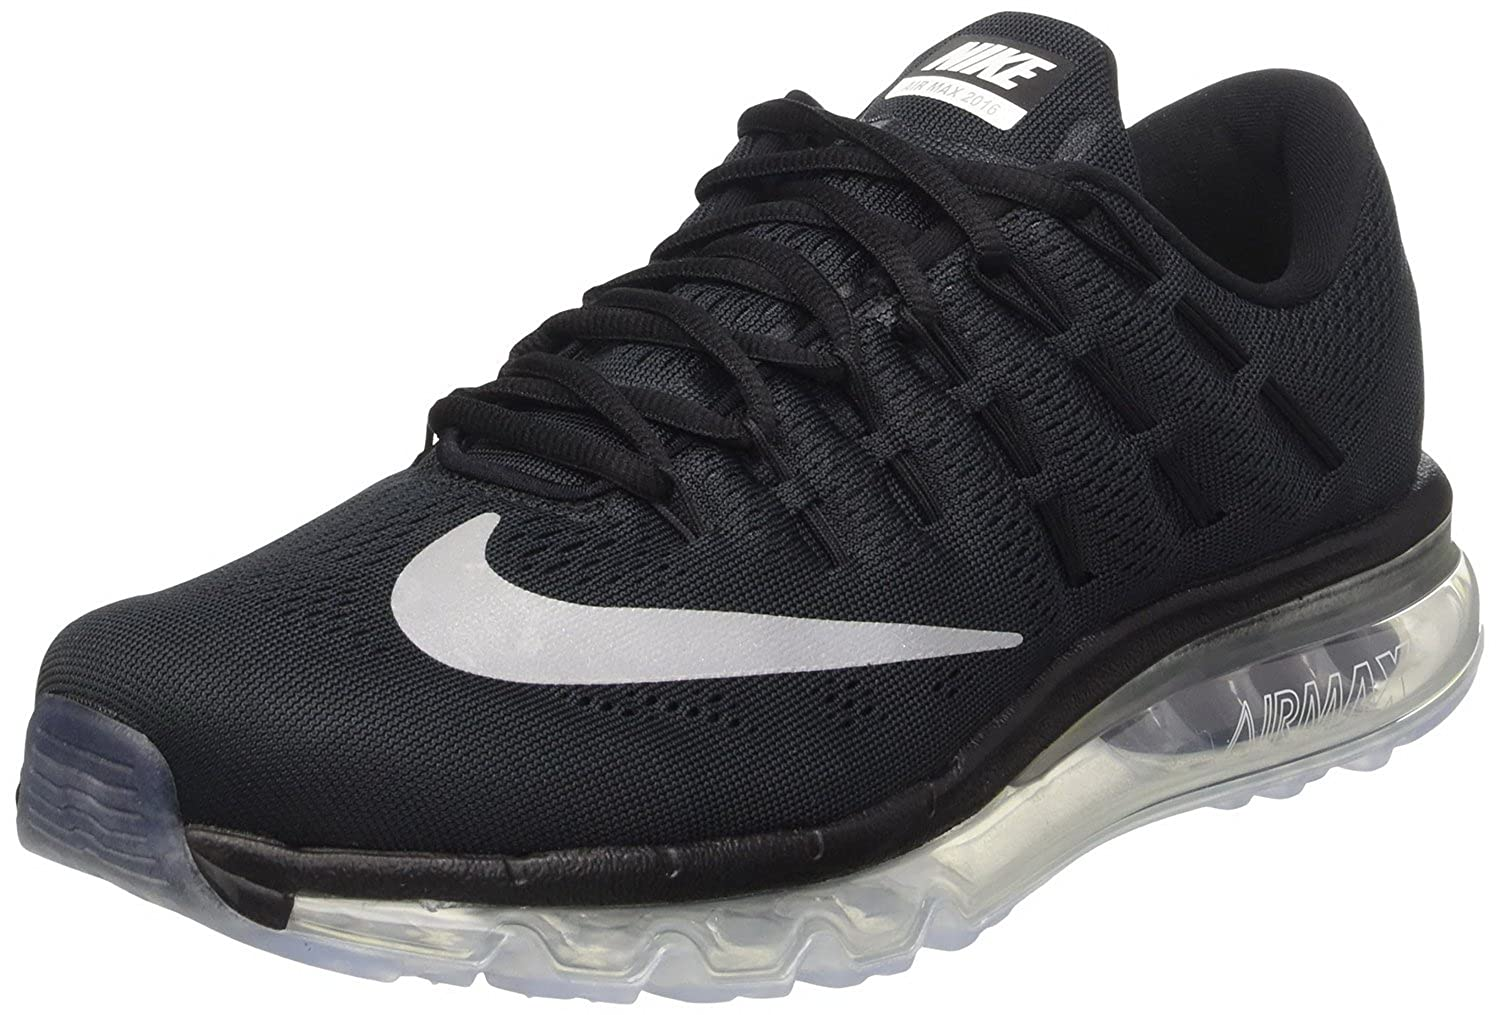 NIKE Air Max 2016 Size 6.5 Mens Running Shoes Black